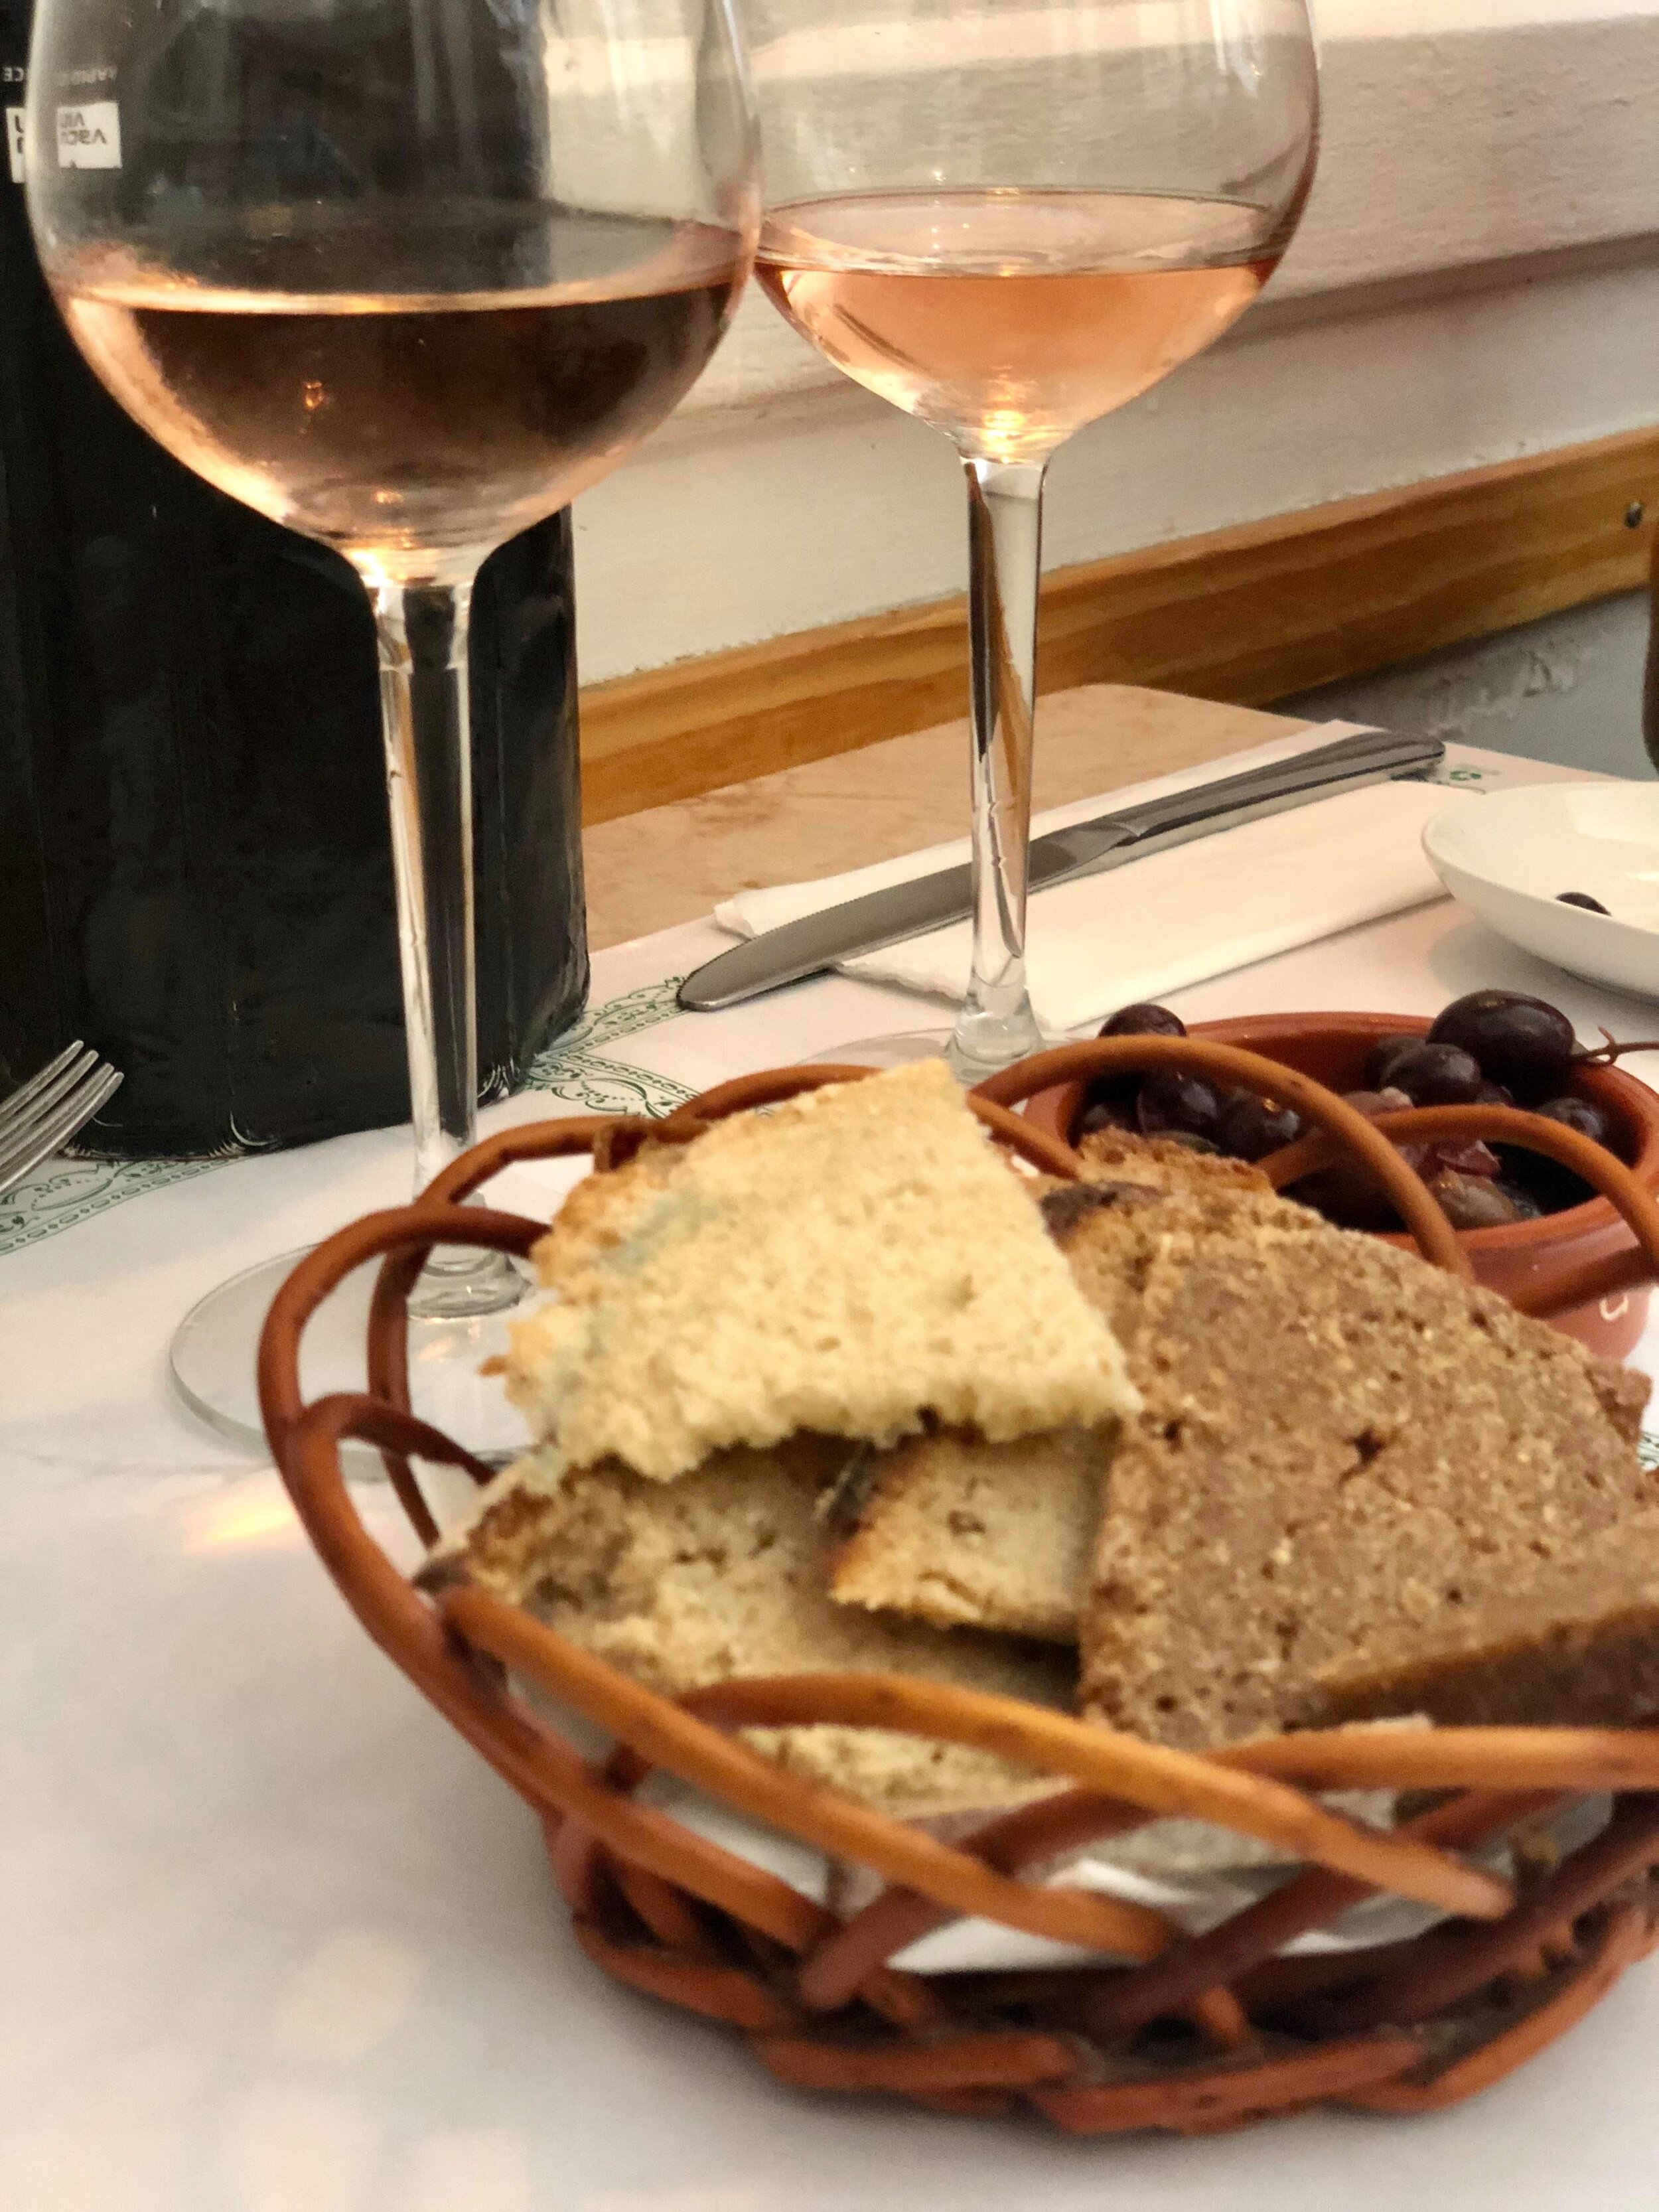 - When in Portugal, start off lunch with a drink, and some freshly baked artisanal bread, olives and olive oil. As common in many European eateries, the house wine, in this case rosé, is also a delight.